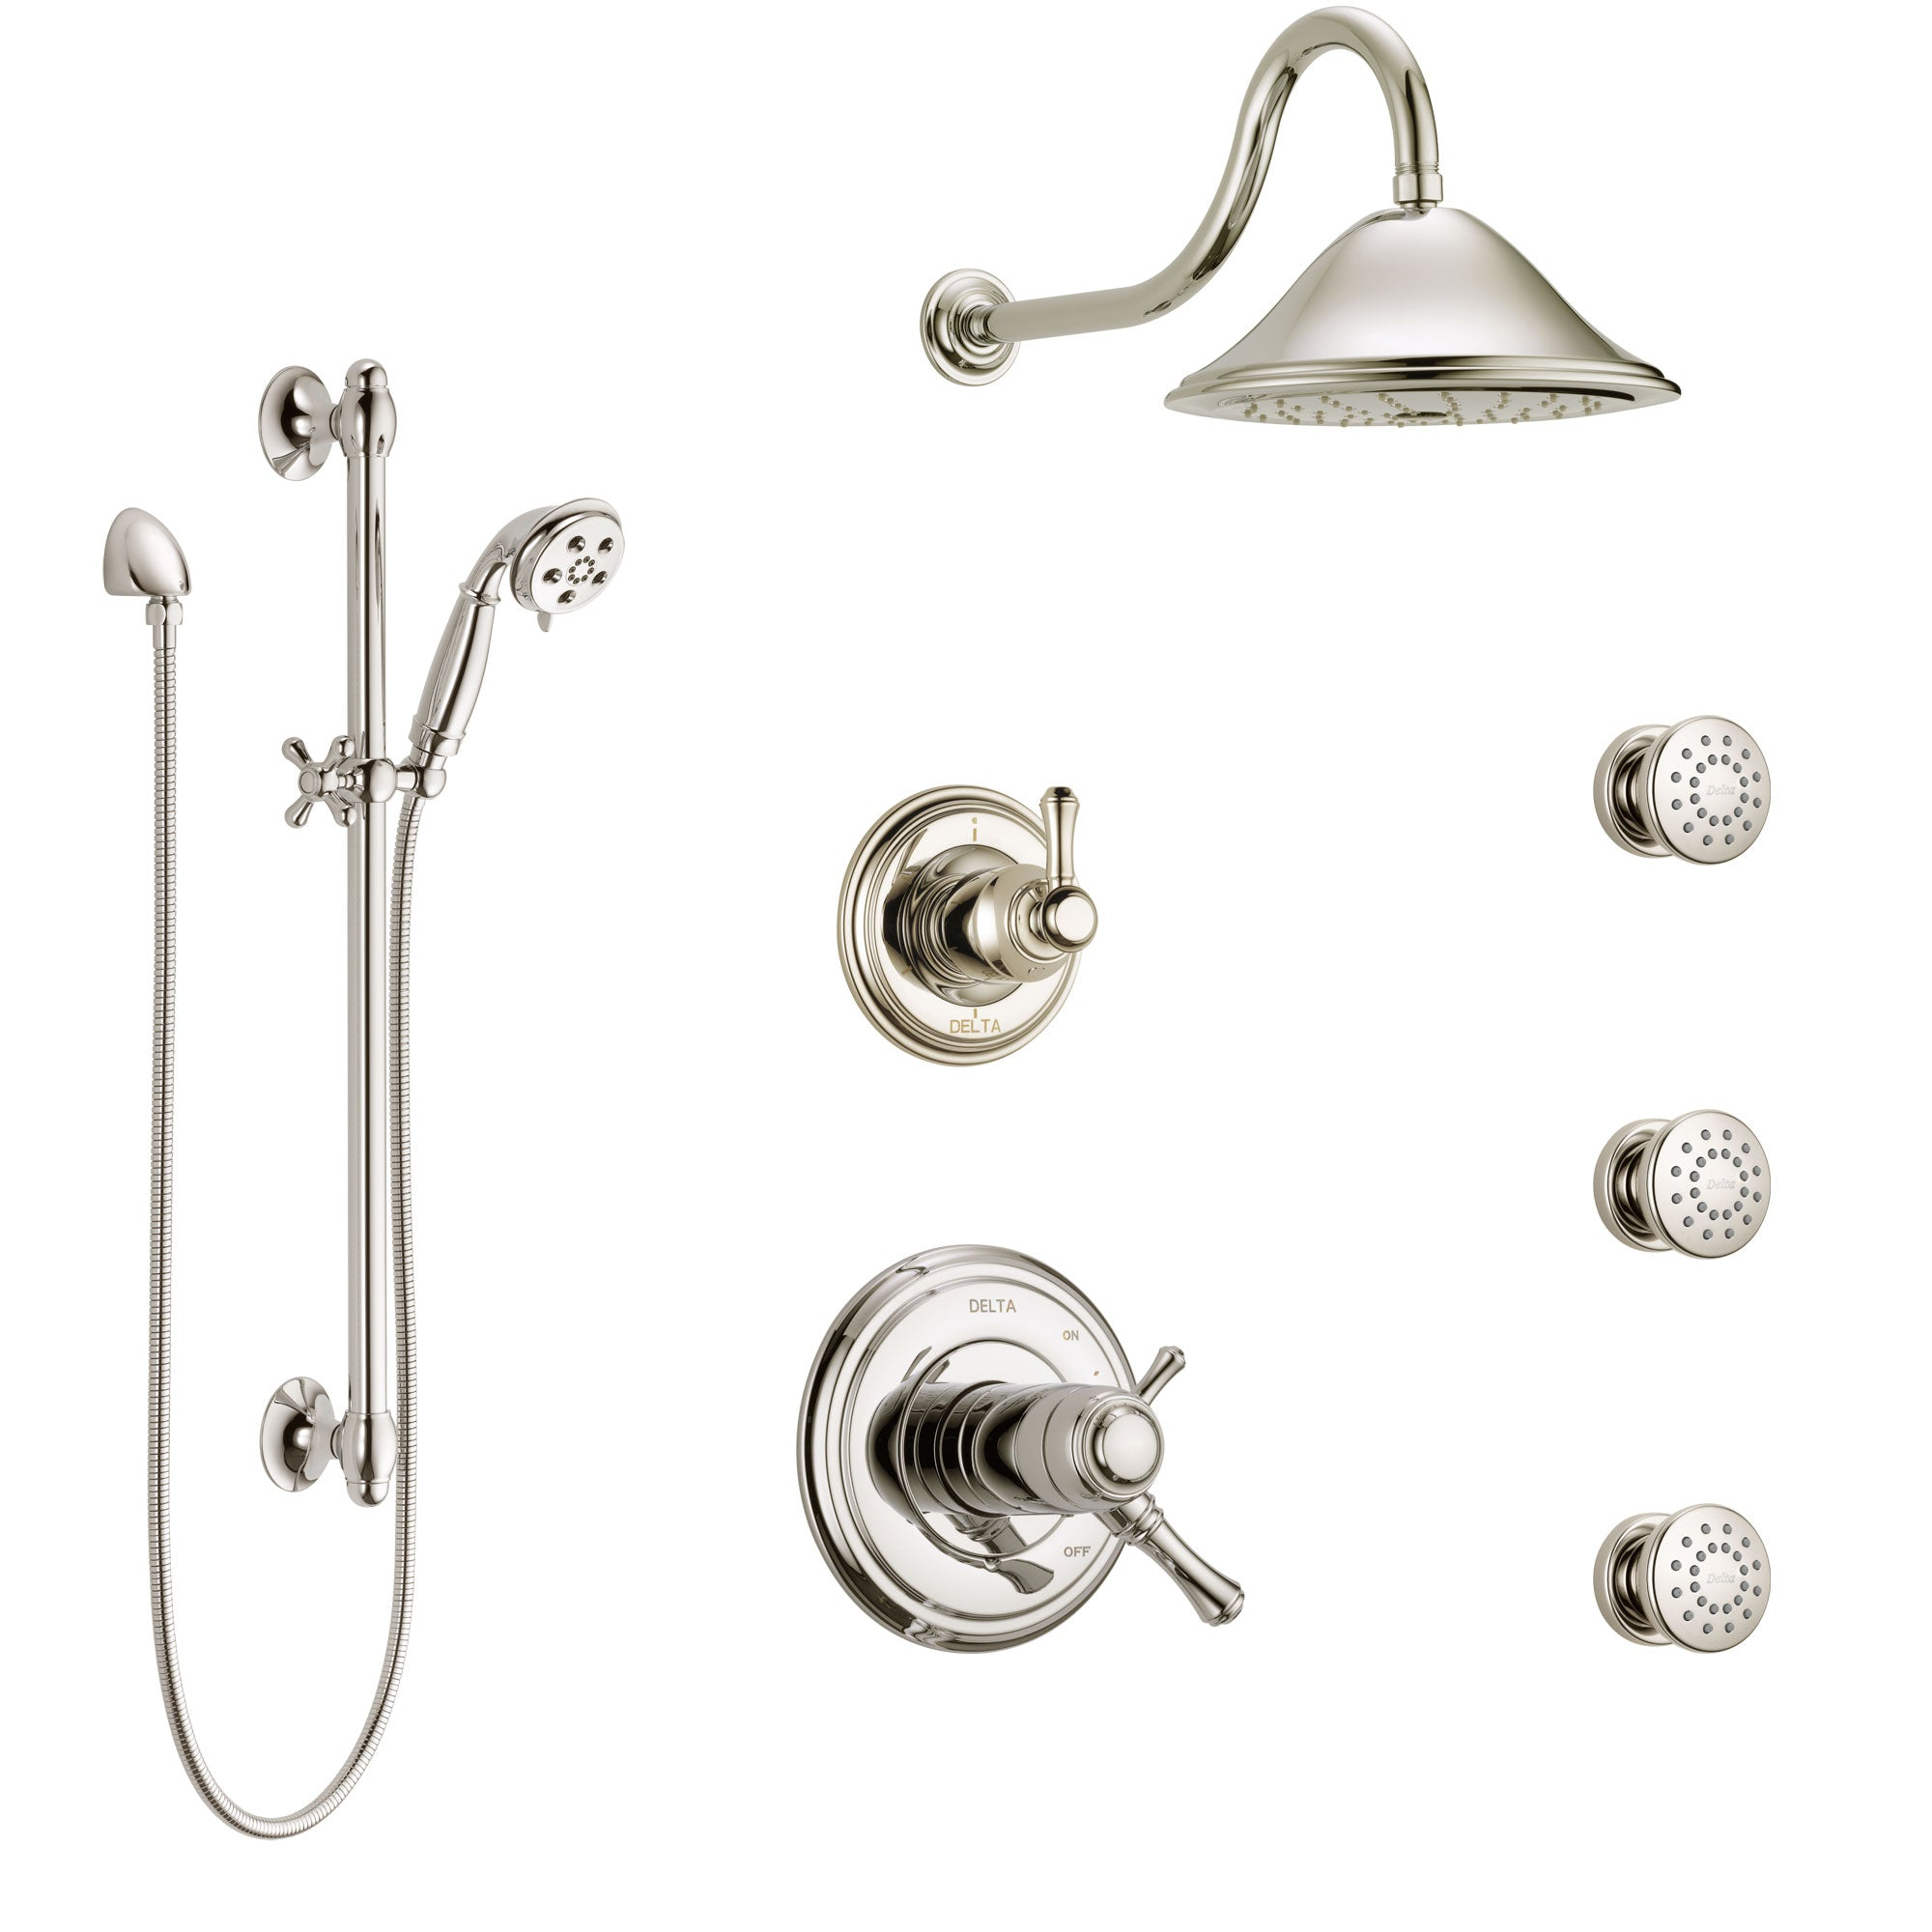 Delta Cassidy Polished Nickel Shower System with Dual Thermostatic Control, Diverter, Showerhead, 3 Body Sprays, and Hand Shower SS17T2971PN1